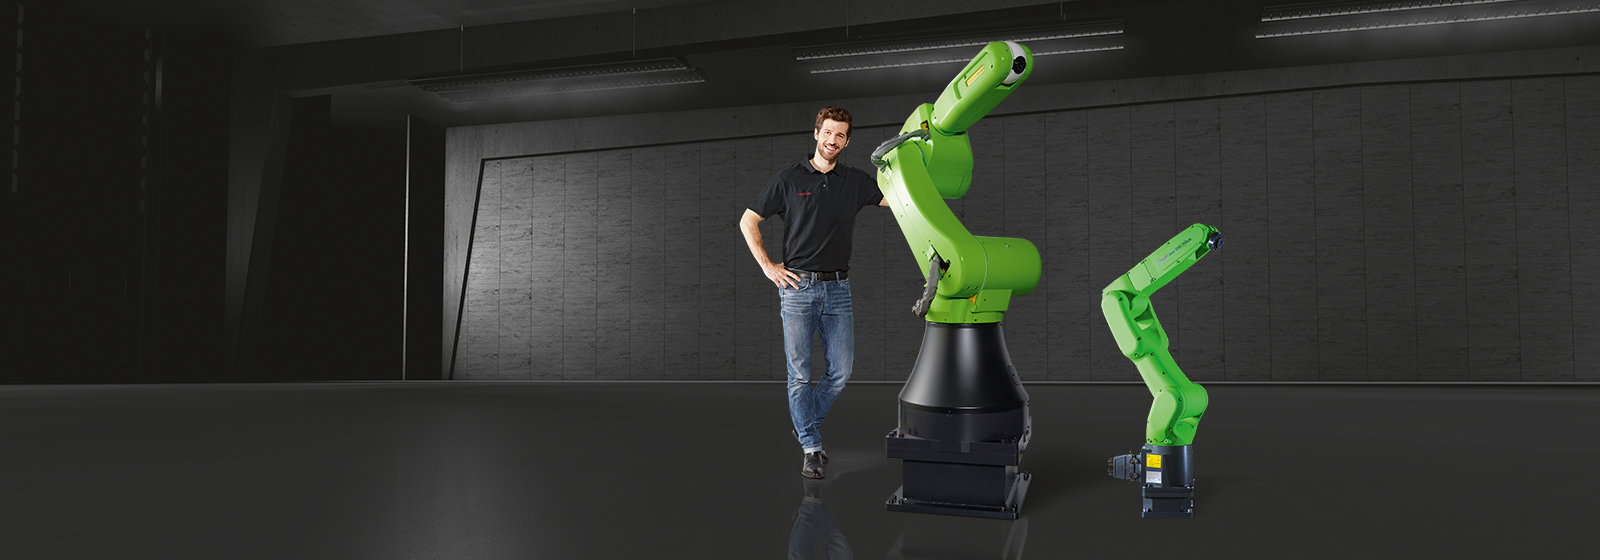 Humans collaborating with Robots